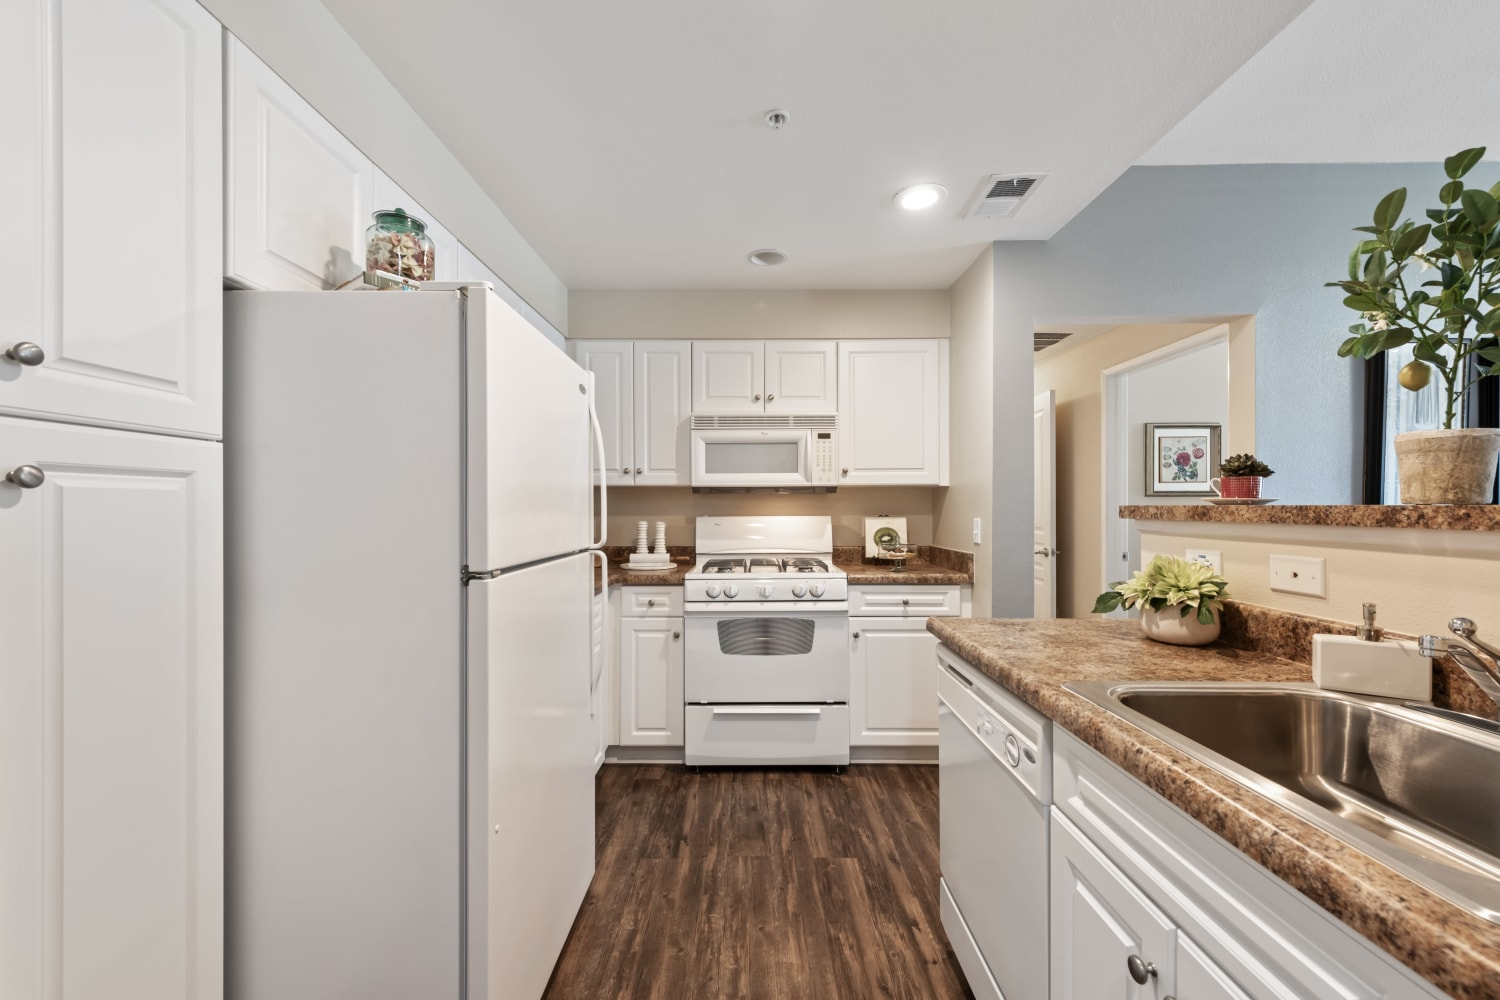 Kitchen at The Village on 5th in Rancho Cucamonga, California